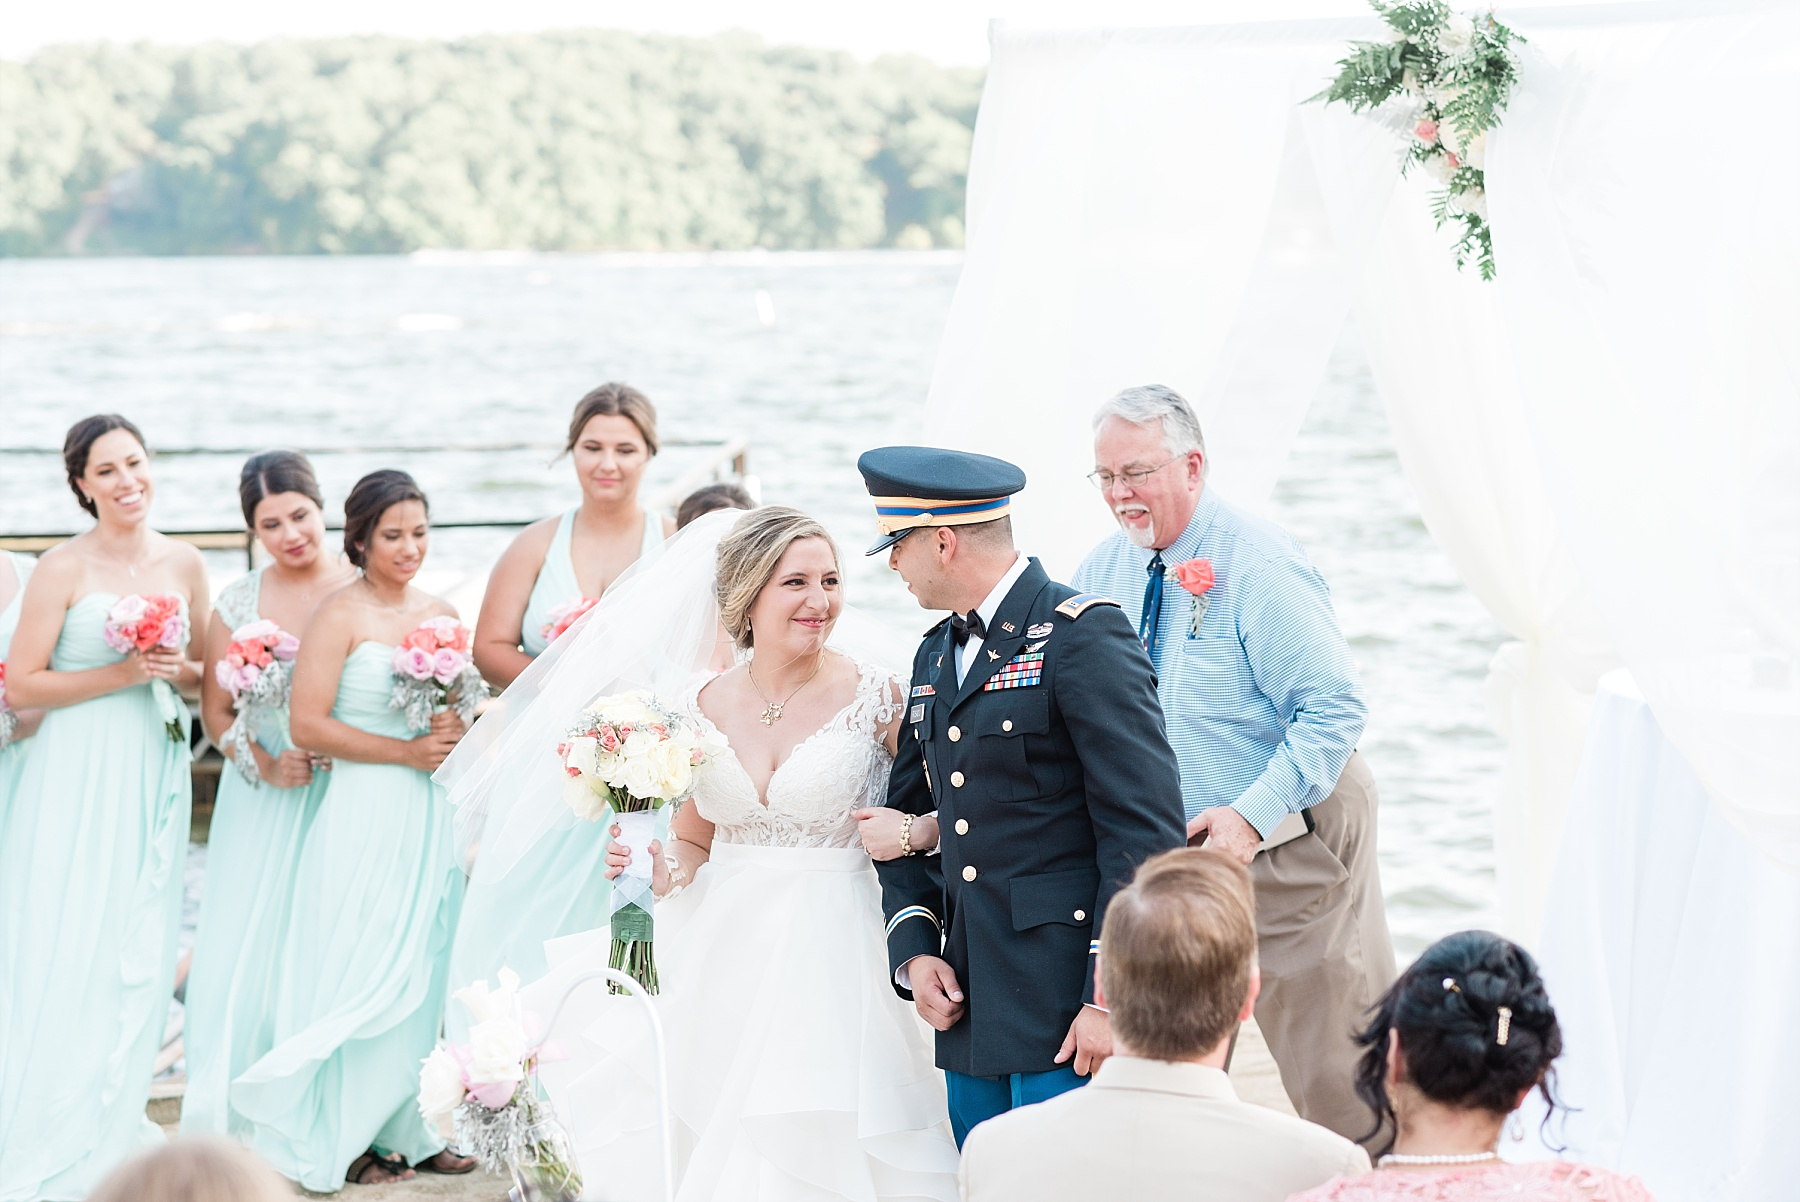 Beachside Sunset Wedding At Lodge Of Four Seasons At Lake Of The Ozarks By Kelsi Kliethermes Photography_0017.jpg